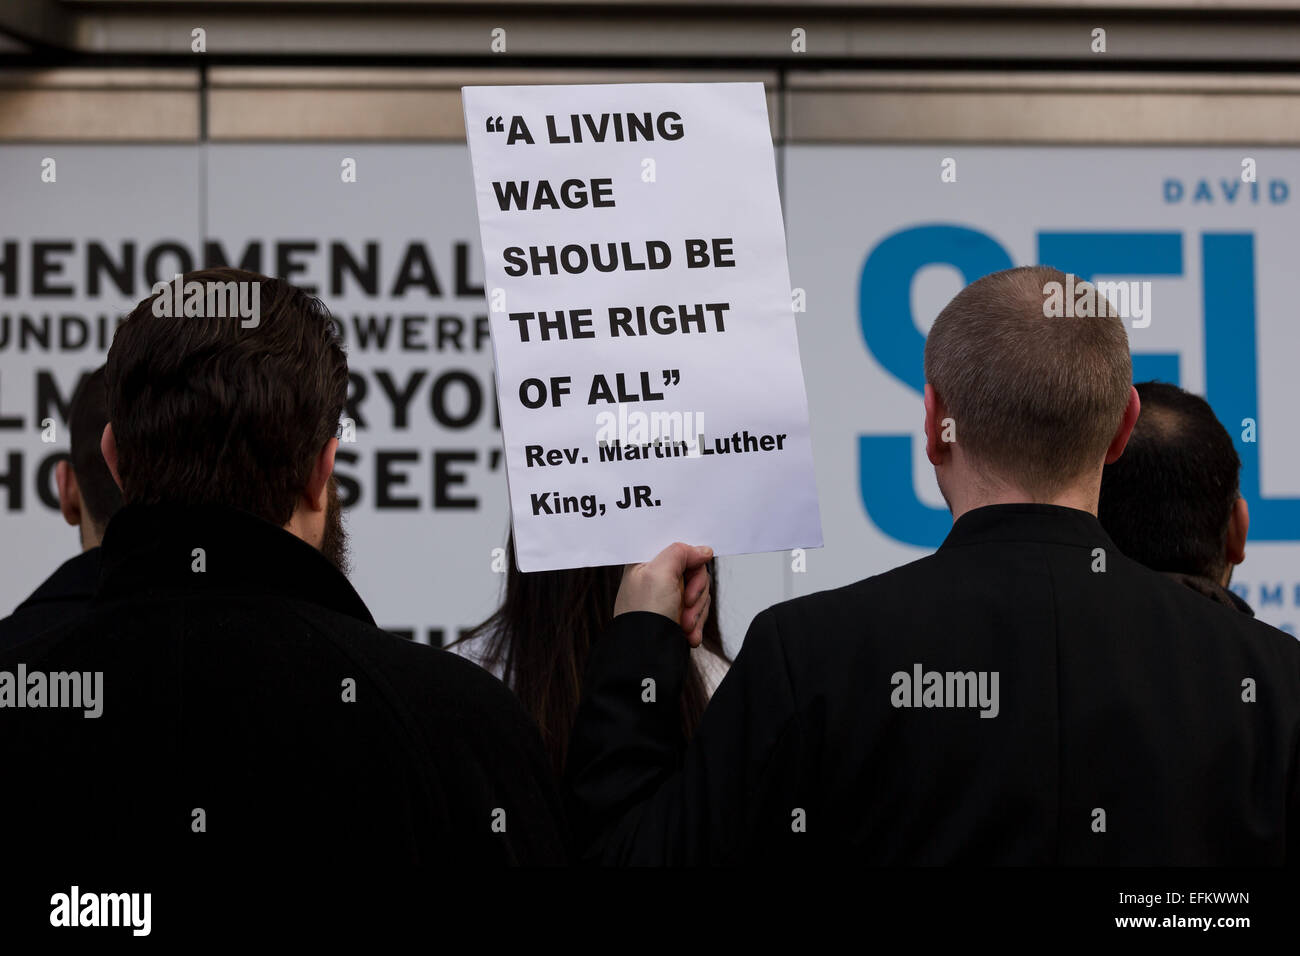 London, UK. 6th February 2015.  Demonstrators stage a protest calling for the living wage to be paid to staff, outside - Stock Image